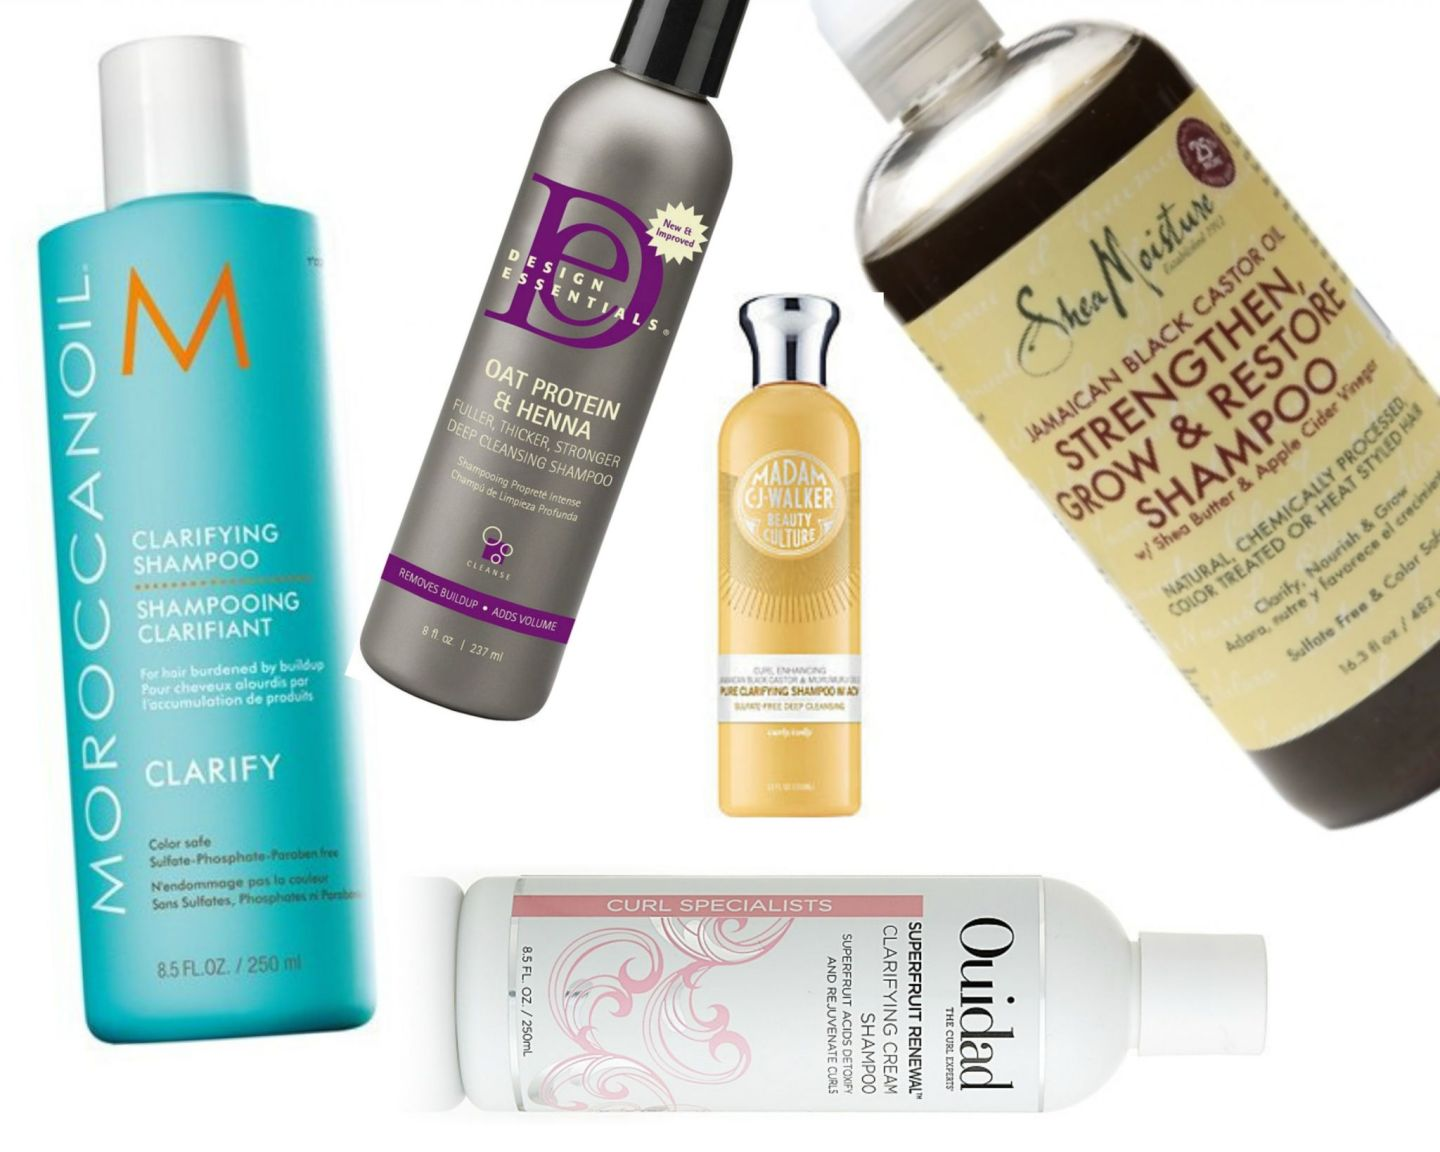 End of fall hair care routine requires a clarifying shampoo